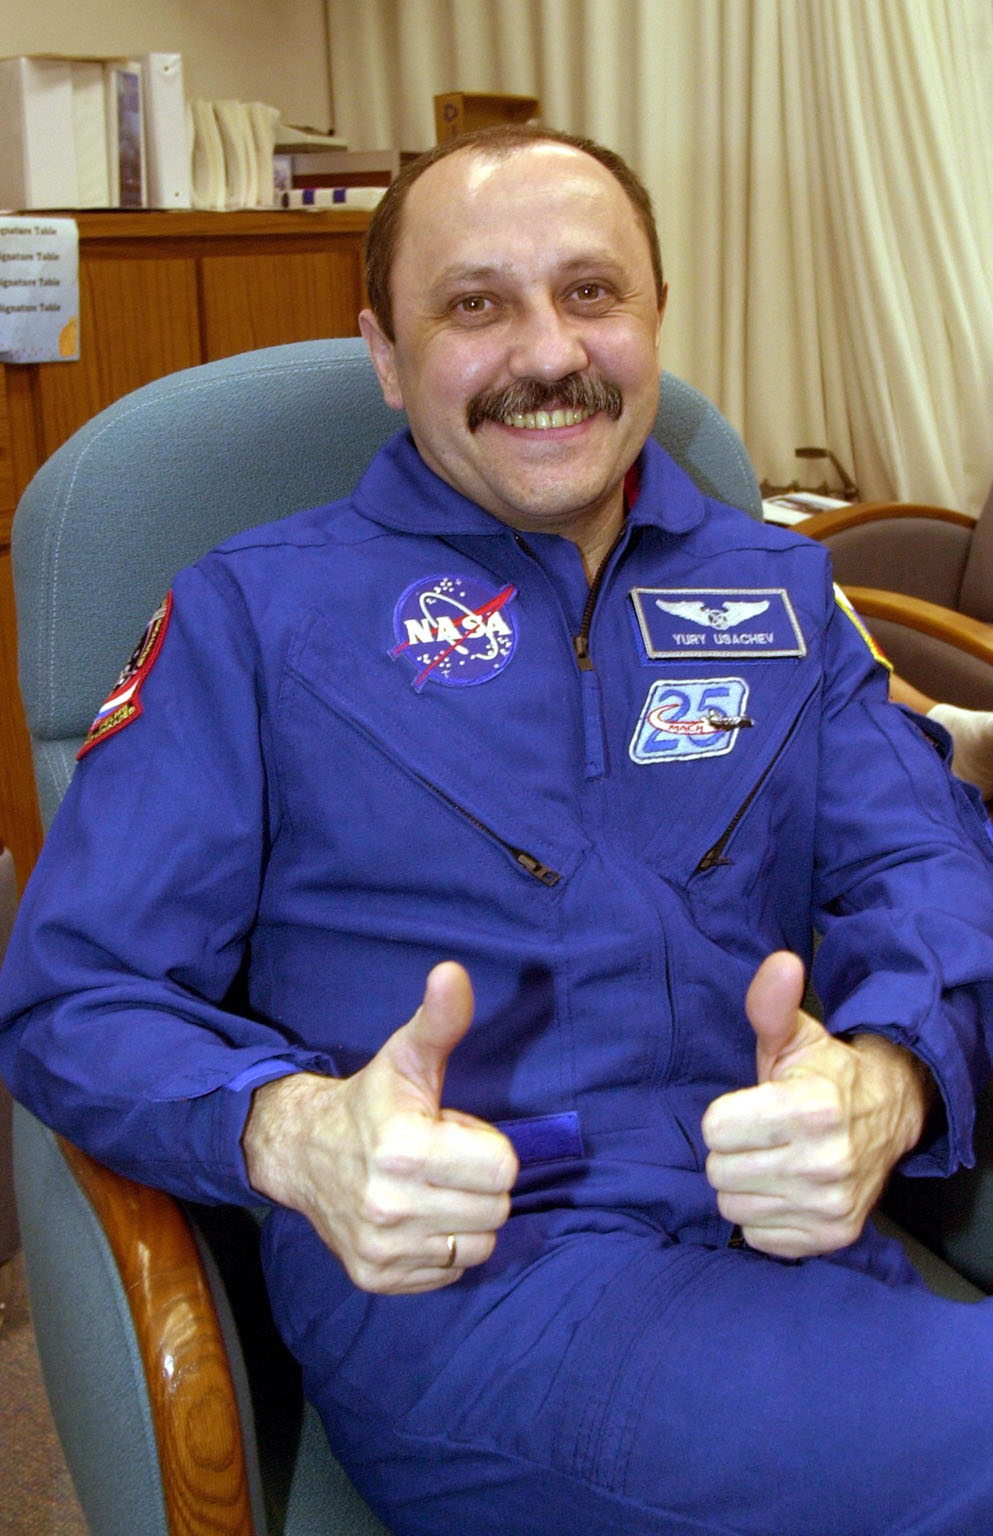 Expedition Two crew Commander Yury Usachev gives a thumbs up from the crew quarters in the Operations and Checkout Building following his return to Earth with the STS-105 crew aboard the orbiter Discovery. The Expedition Two crew have spent the past five months living and working on the International Space Station. Mission STS-105 came to a close upon landing at KSC's Shuttle Landing Facility runway 15 after a 4.3-million-mile mission to the International Space Station. Main gear touchdown was at 2:22:58 p.m.EDT; wheel stop, at 2:24:06 p.m. EDT. The 11-day, 21-hour, 12-minute STS-105 mission accomplished the goals set for the 11th flight to the International Space Station: swapout of the resident Station crew; delivery of equipment, supplies and scientific experiments; and installation of the Early Ammonia Servicer and heater cables for the S0 truss on the Station. Discovery completed its 30th flight into space, the 106th mission of the Space Shuttle program. Out of five missions in 2001, the landing was the first to occur in daylight at KSC